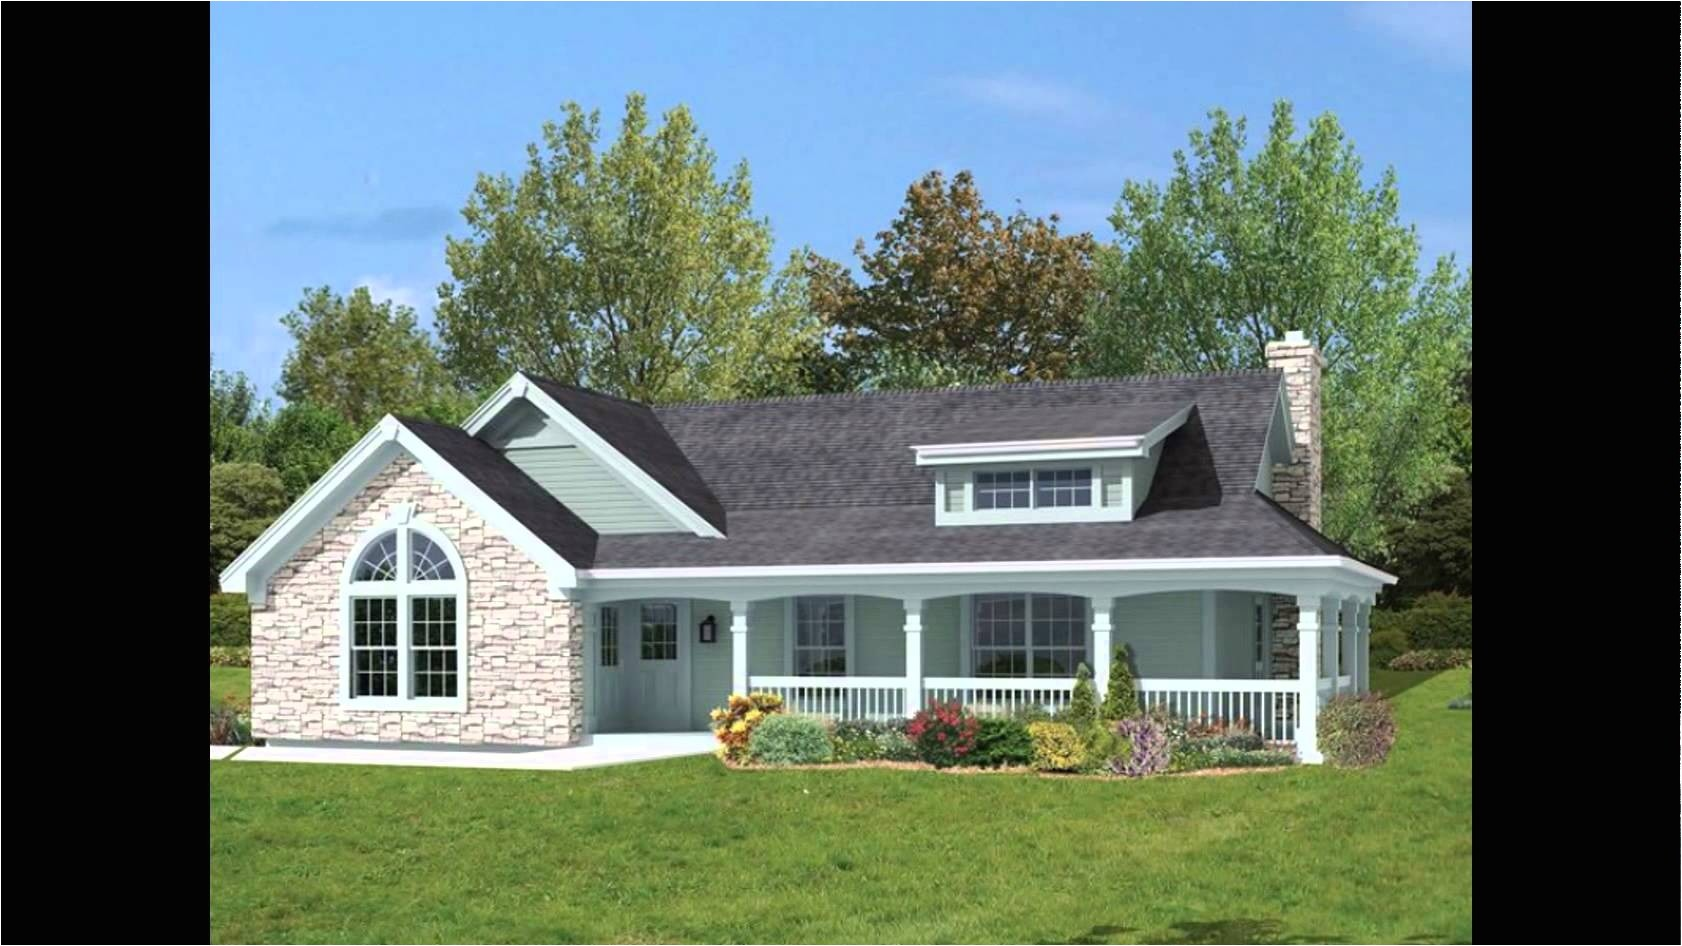 12857 ranch style house plans with basement and wrap around porch